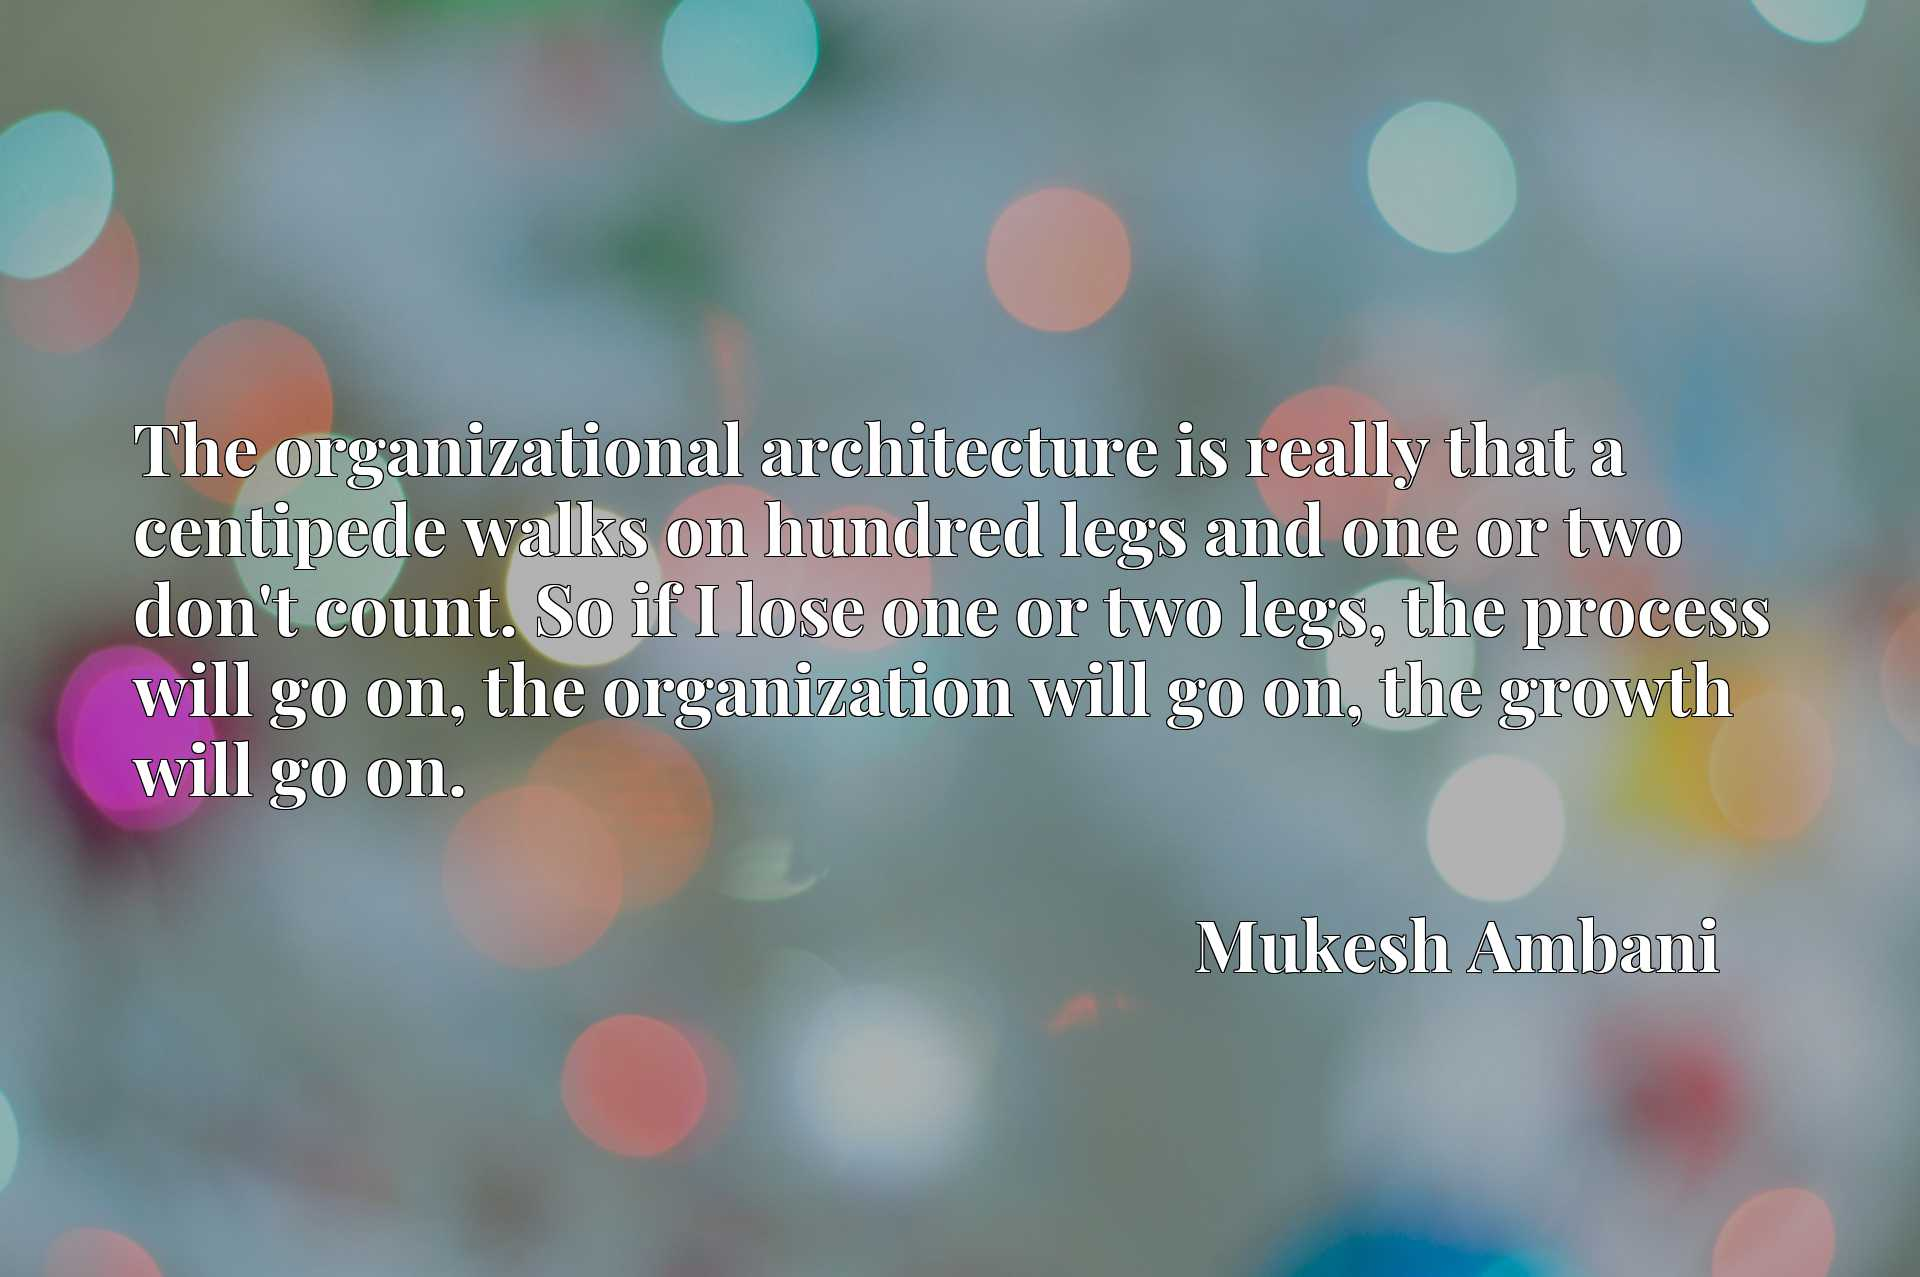 The organizational architecture is really that a centipede walks on hundred legs and one or two don't count. So if I lose one or two legs, the process will go on, the organization will go on, the growth will go on.